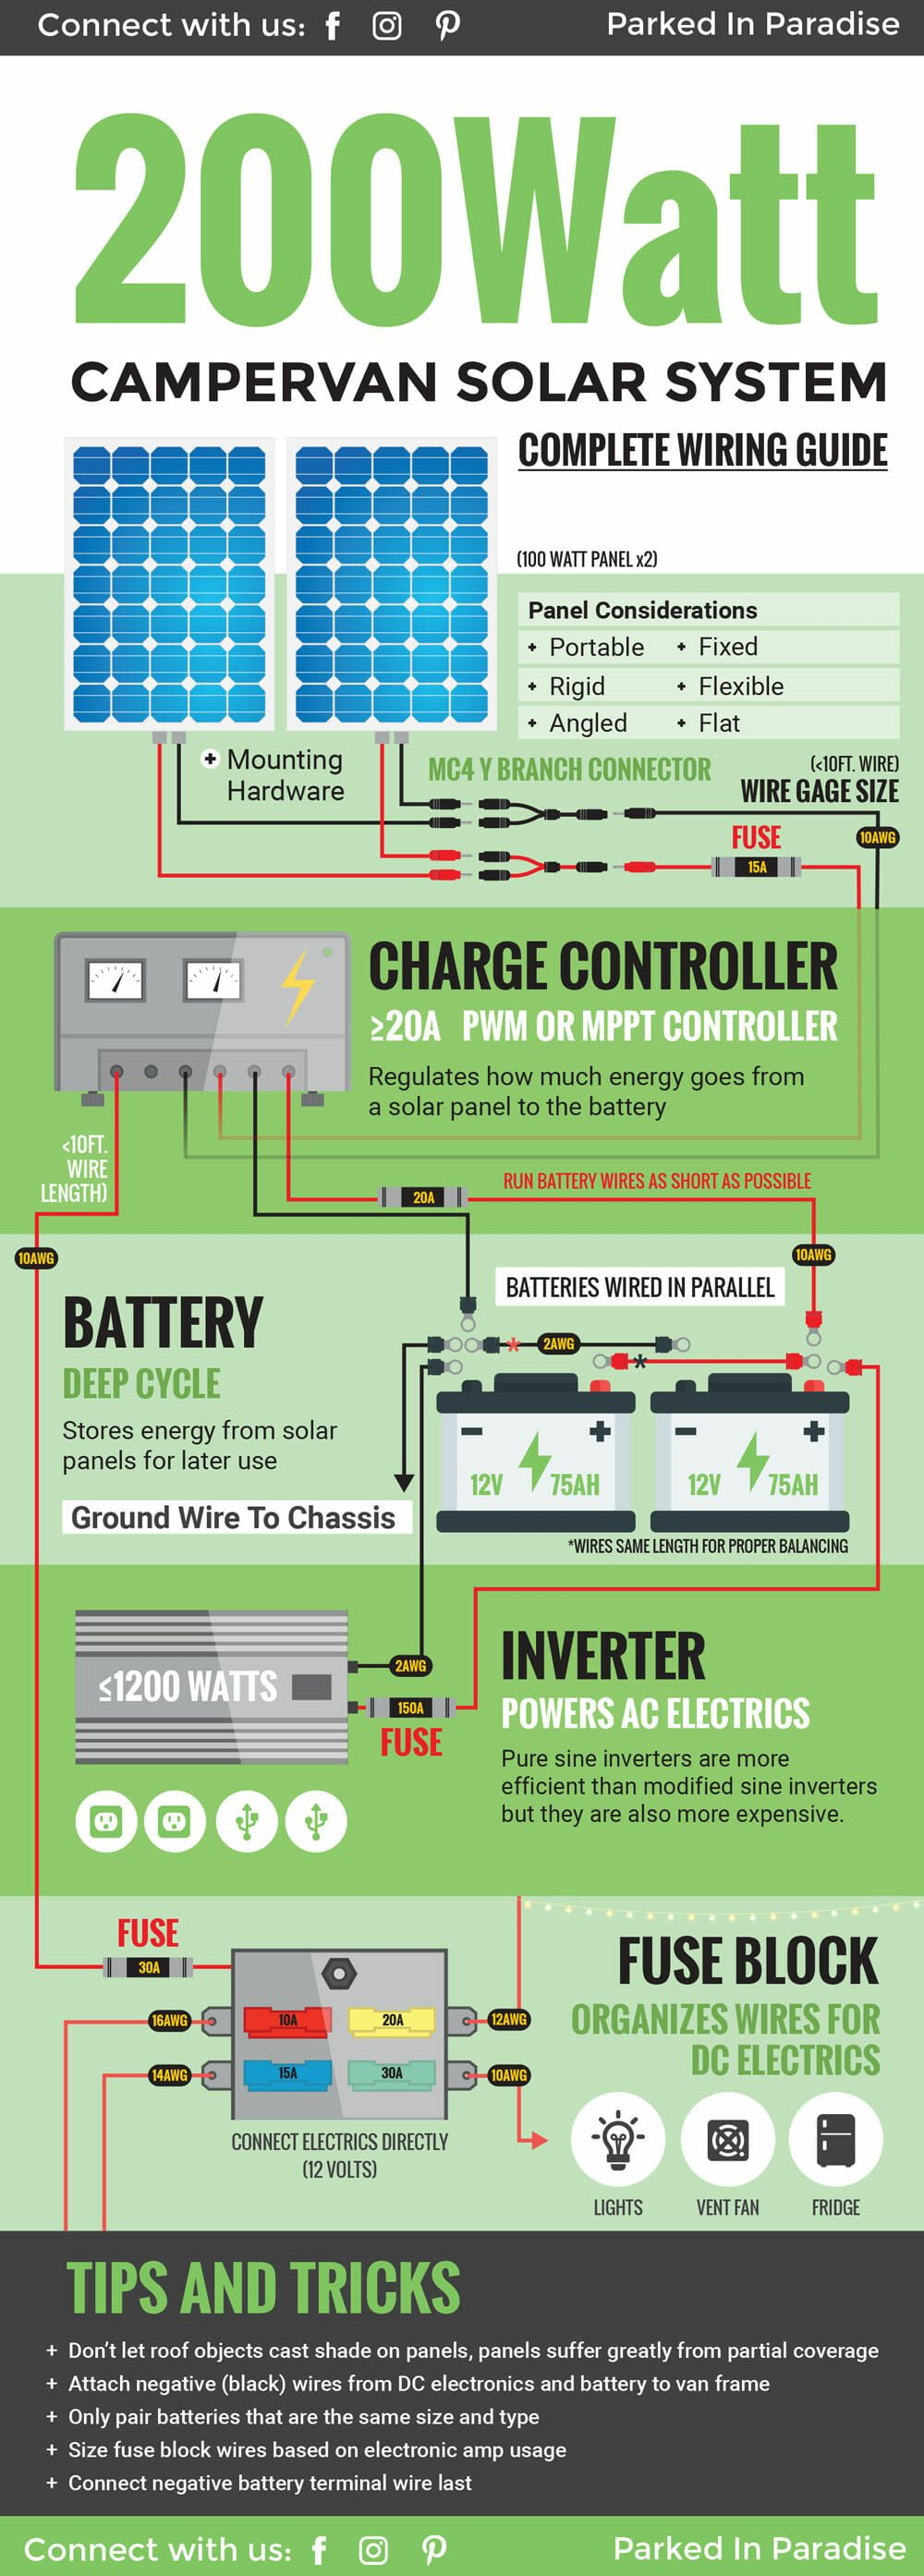 hight resolution of this solar panel graphic is so detailed and perfect for my next van build now i ll know exactly how to wire up the solar panel system for my camper van